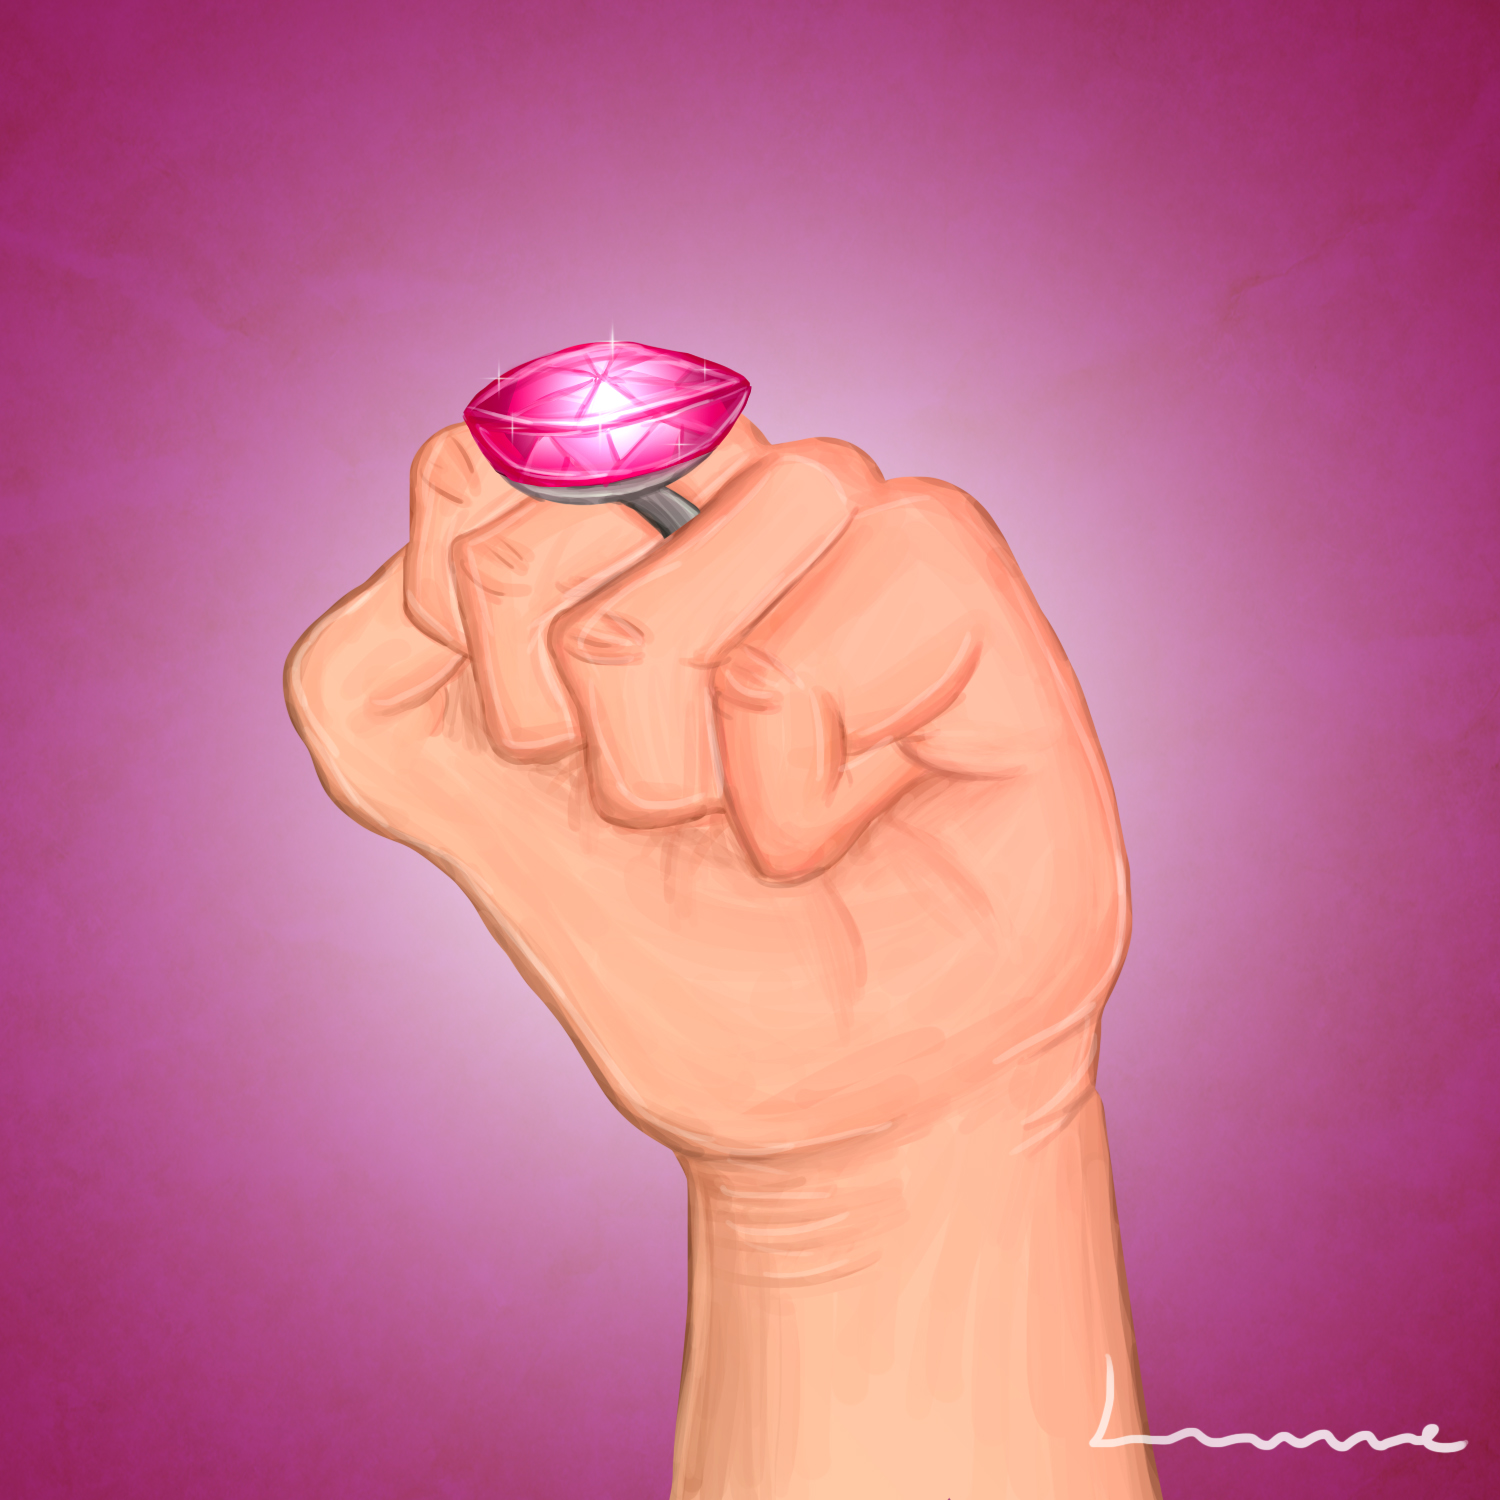 the pink panther diamond